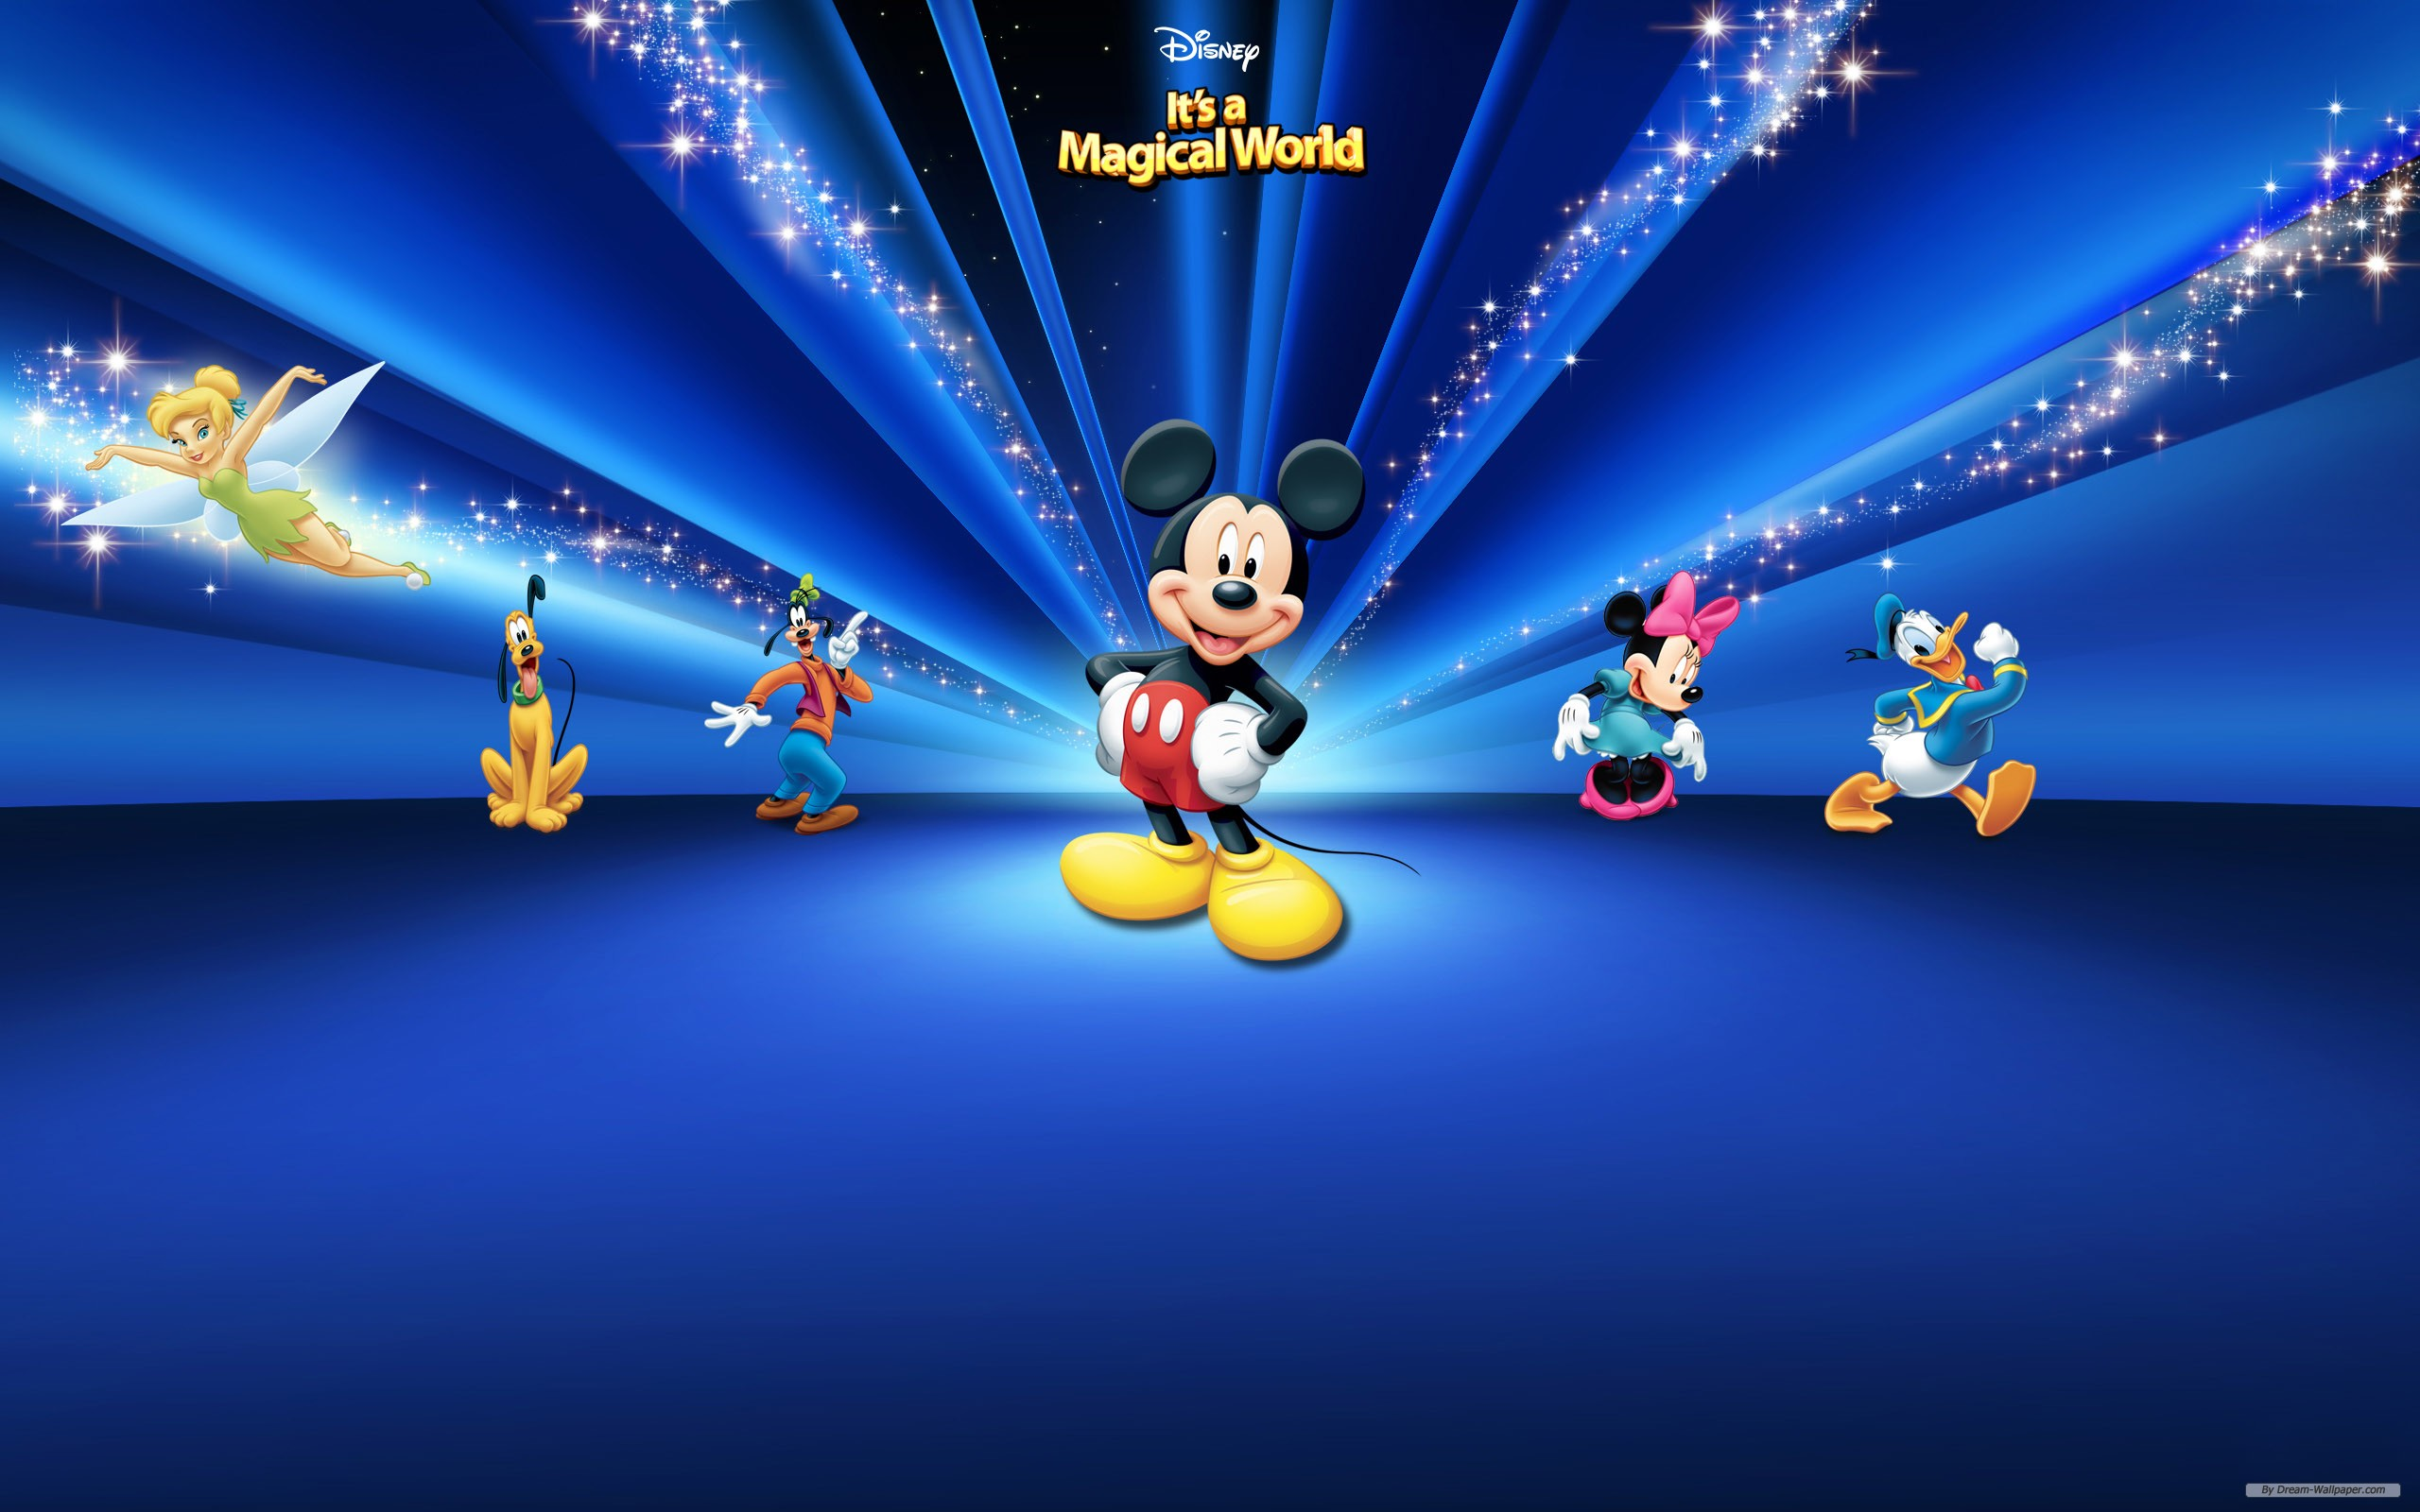 Cartoon wallpaper   Disney Theme 1 wallpaper   2560x1600 2560x1600